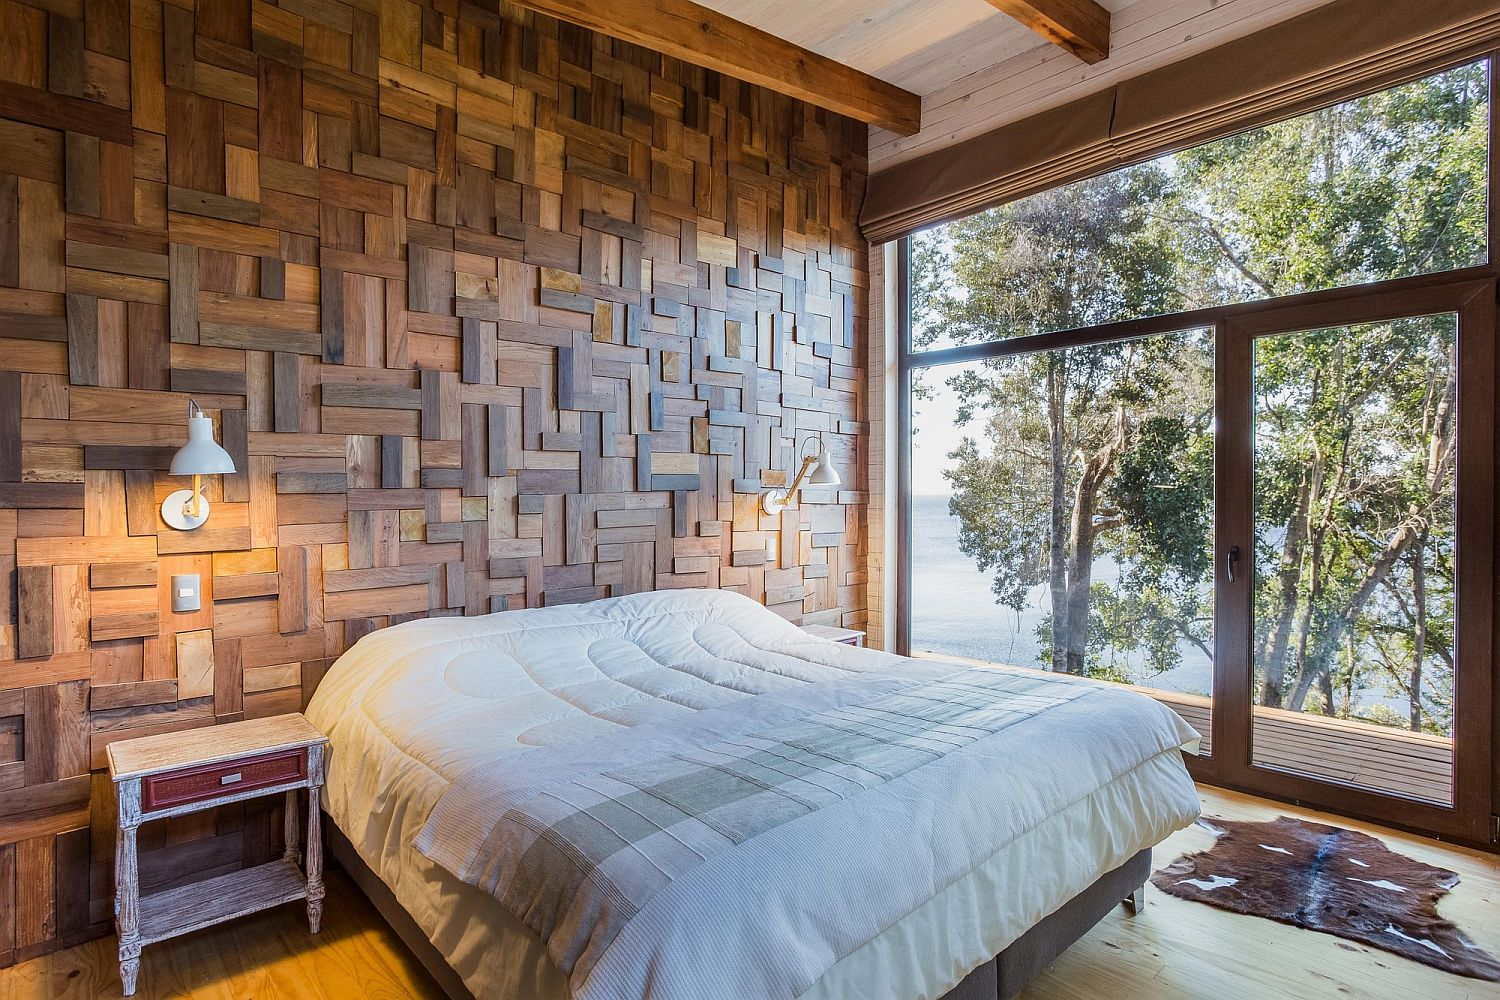 Exquisite wooden accent wall for the bedroom with 3D pattern